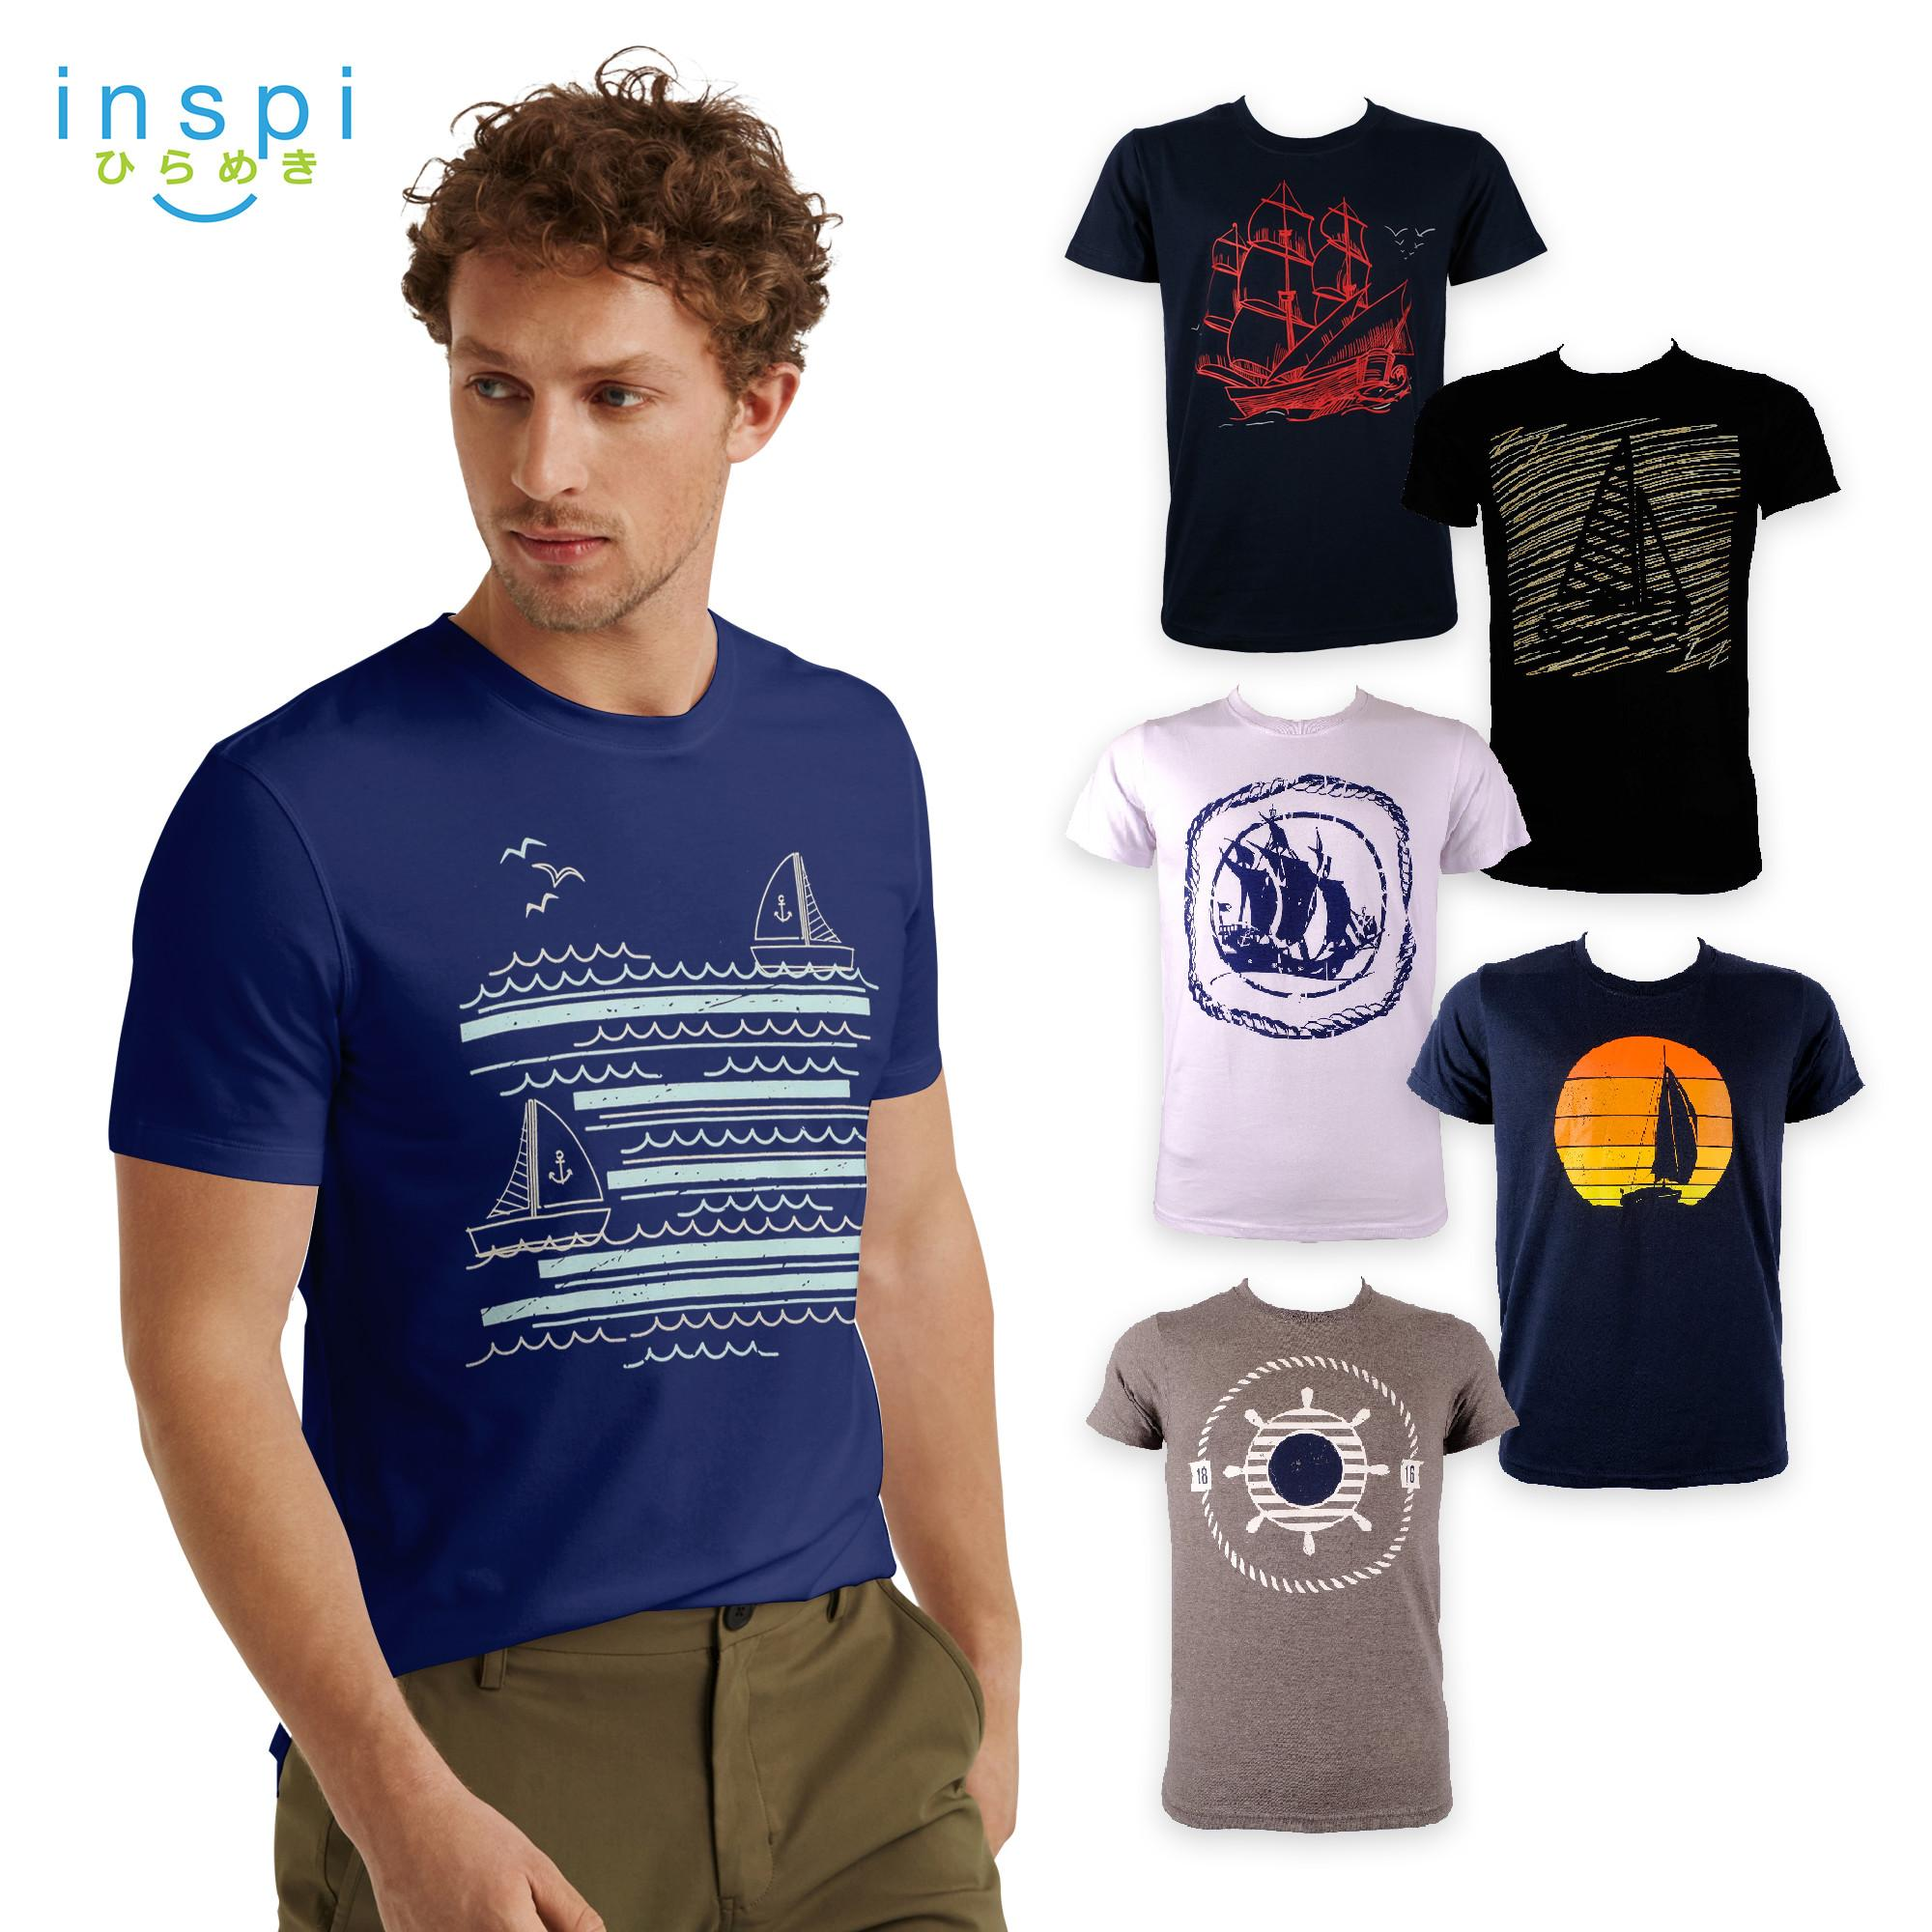 f7fb2a98687 INSPI Tees Sailing Collection tshirt printed graphic tee Mens t shirt  shirts for men tshirts sale